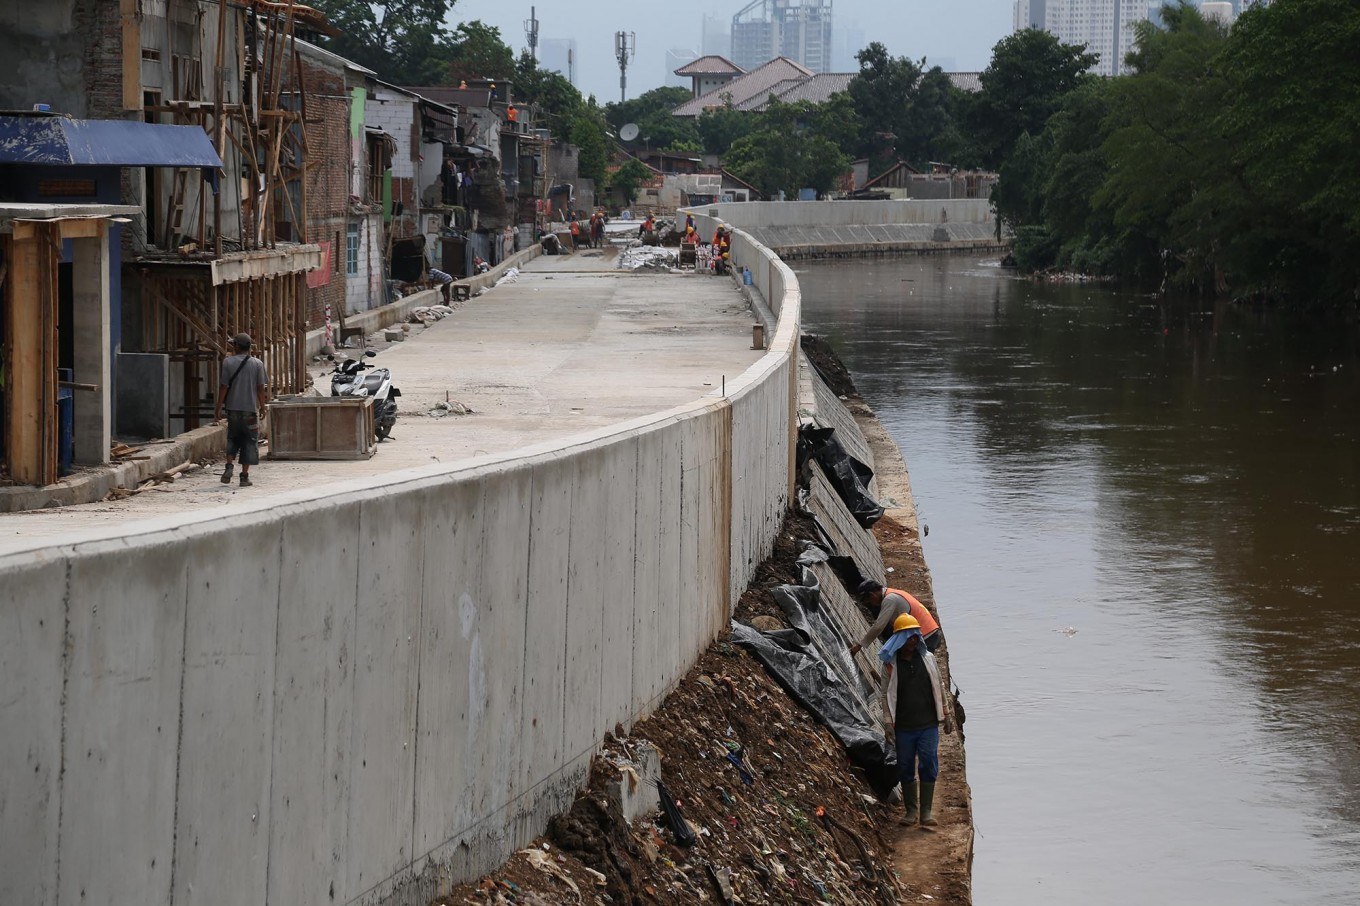 Anies told to fulfill pledges, stop river dredging